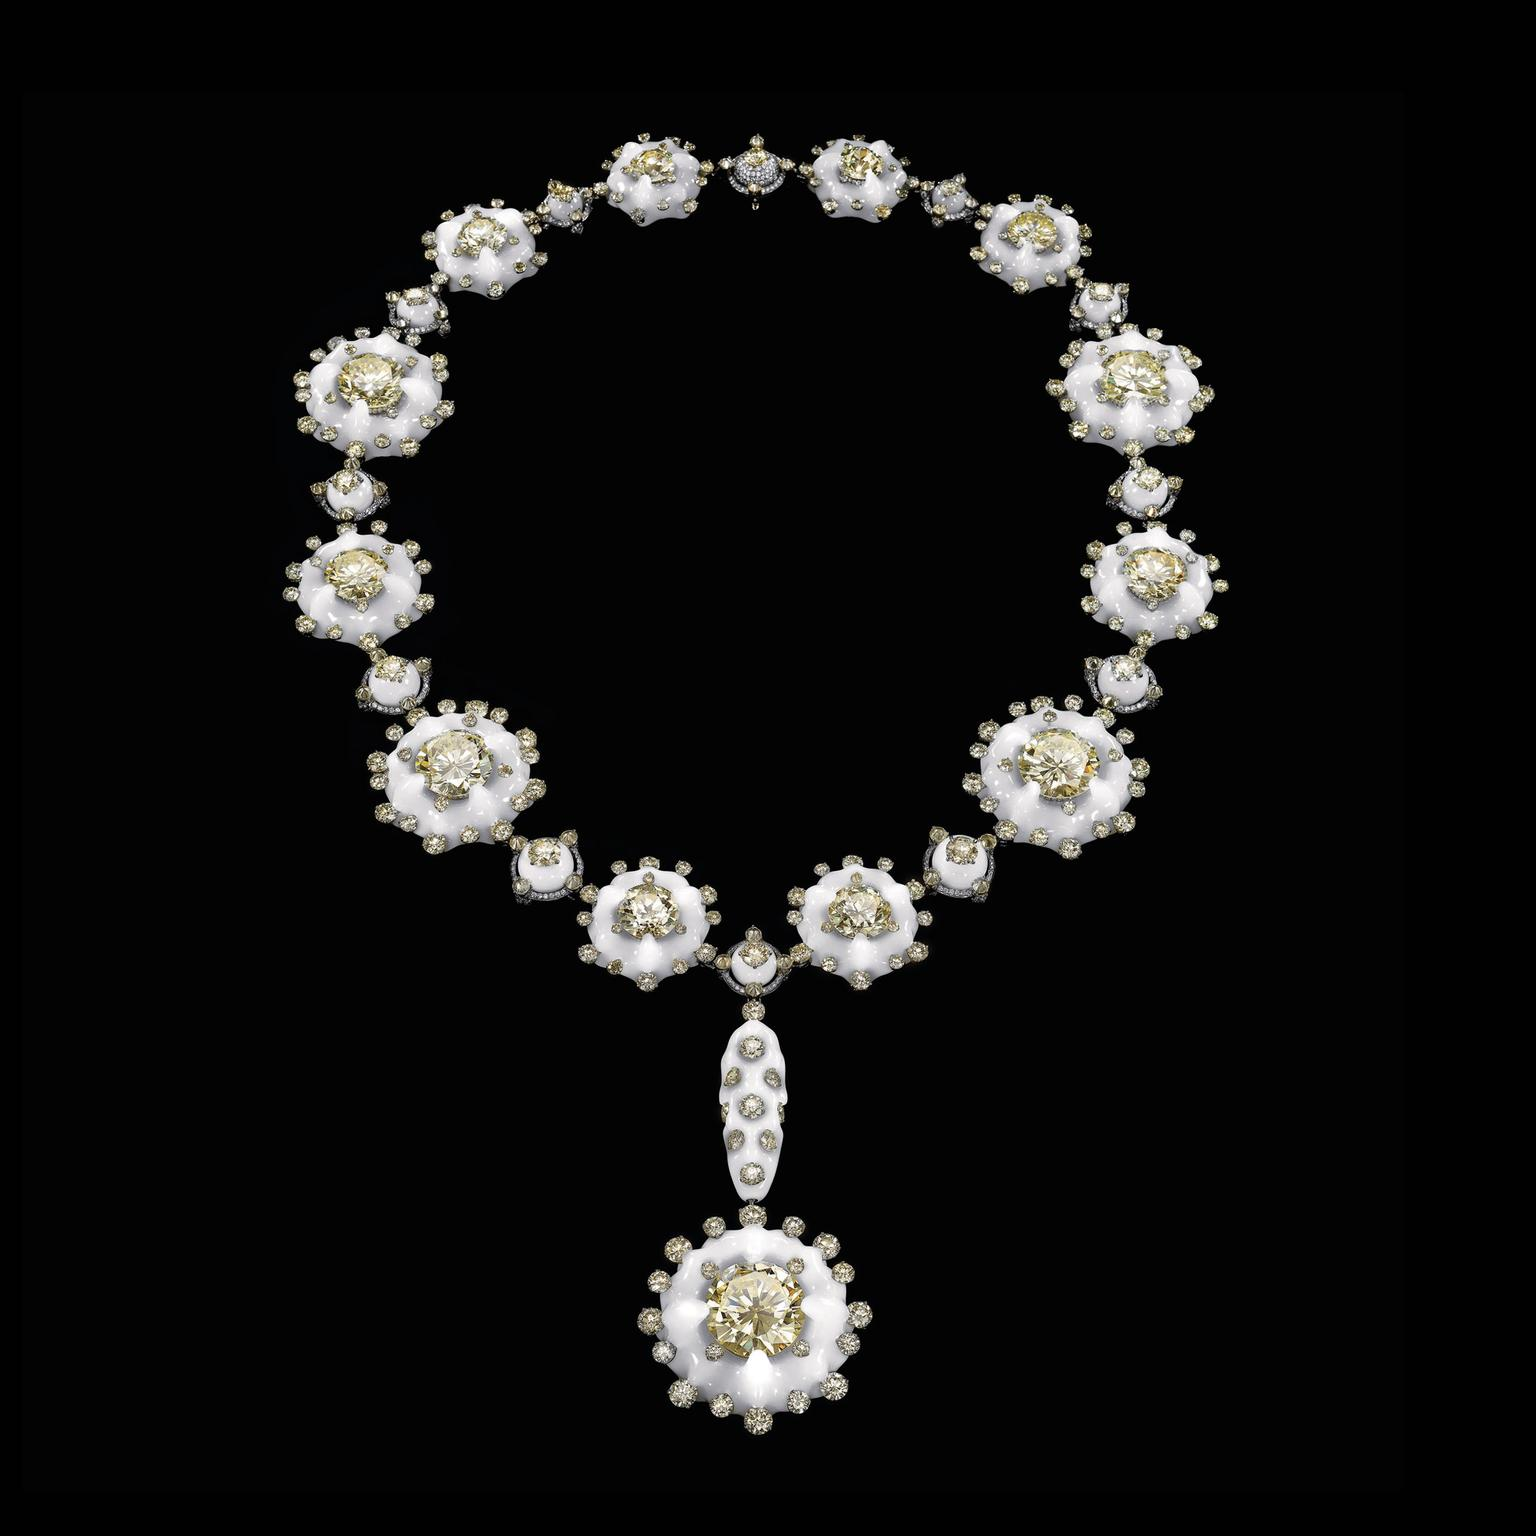 Wallace Chan Plum Flowers in Snow necklace